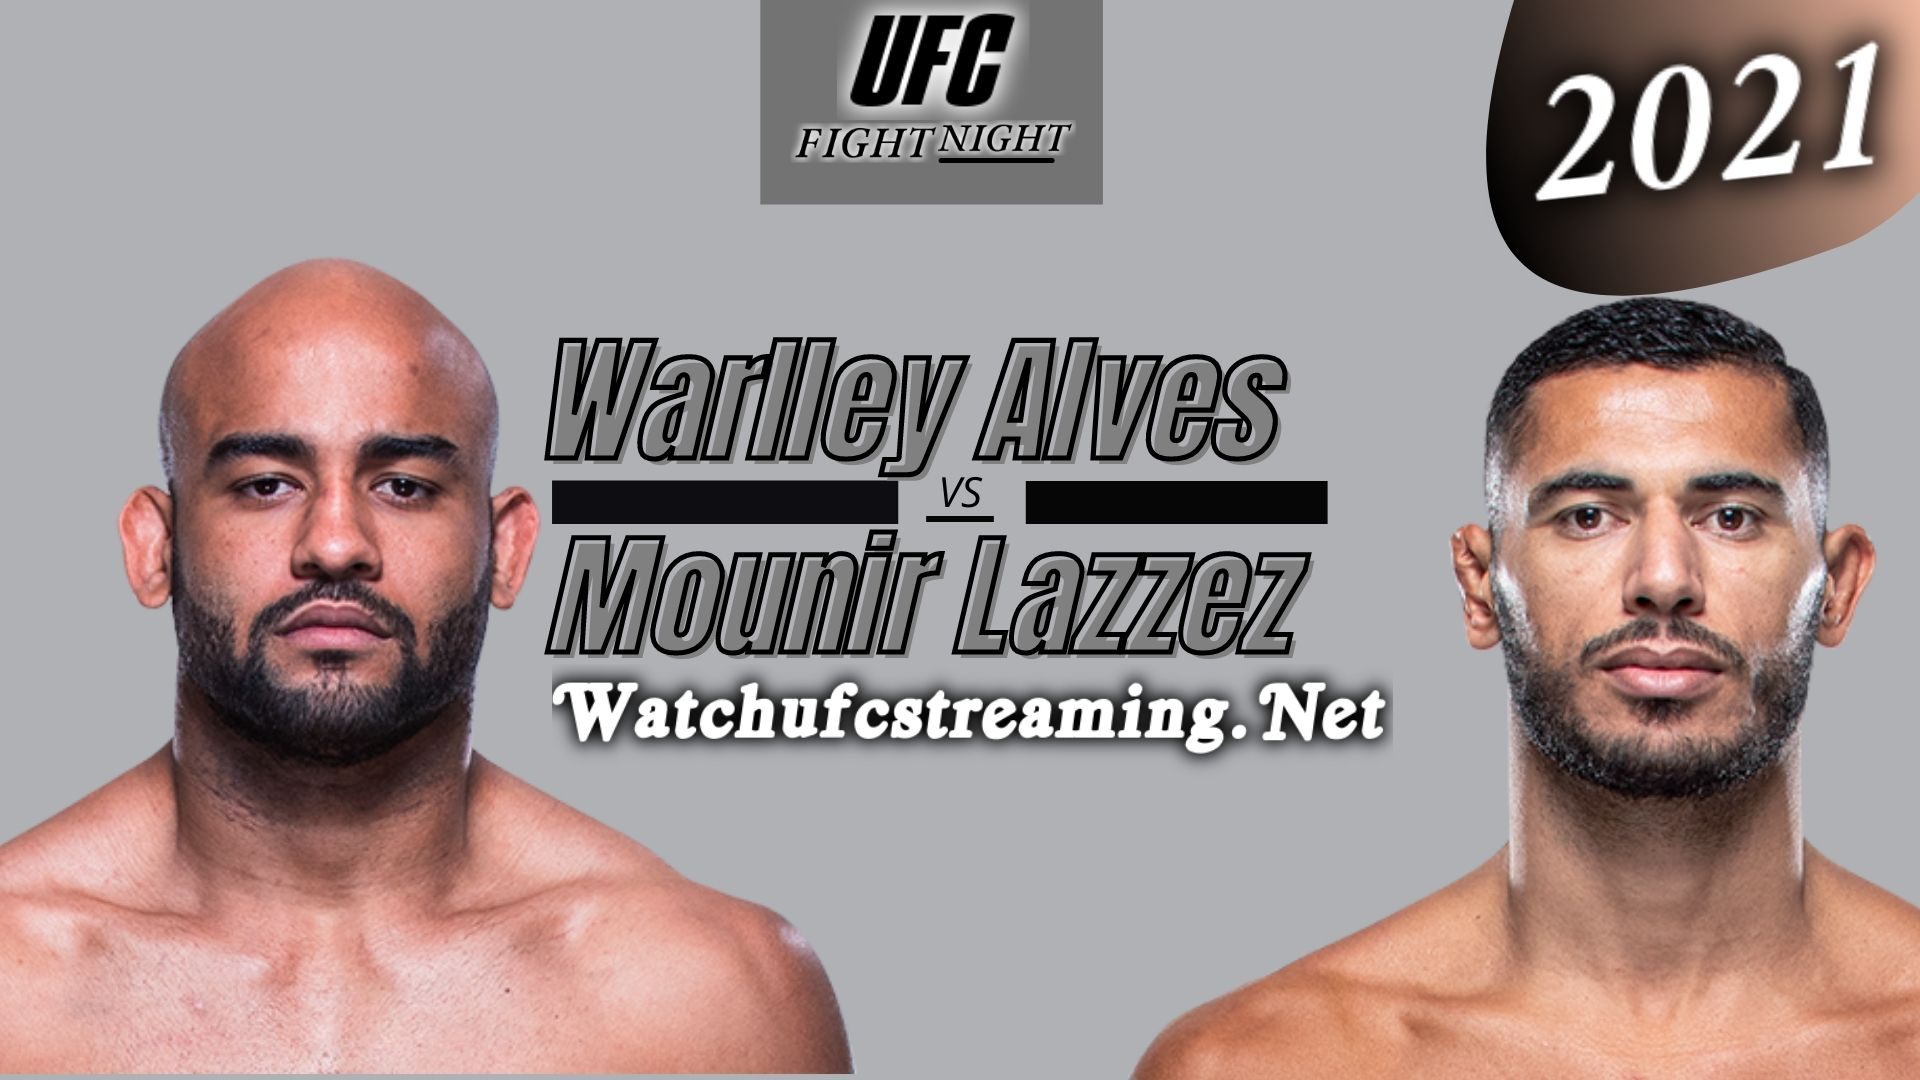 UFC Fight Night Warlley Alves Vs Mounir Lazzez - Highlights 2021